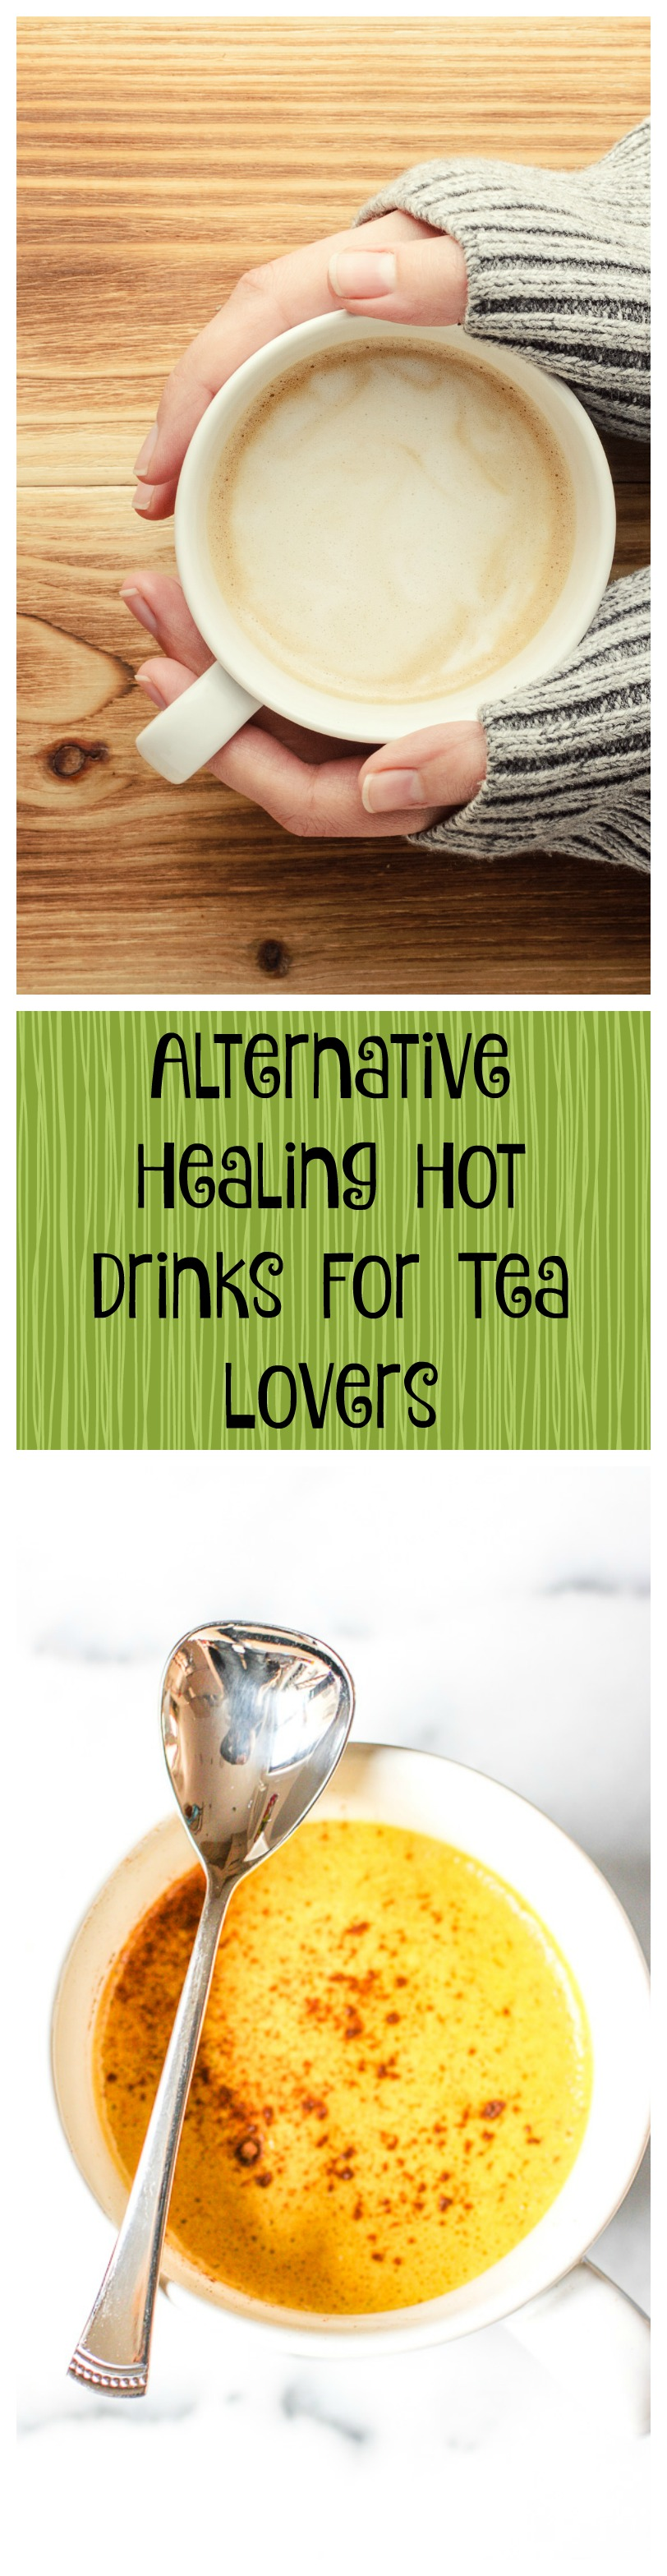 alternative healing hot drinks for tea lovers